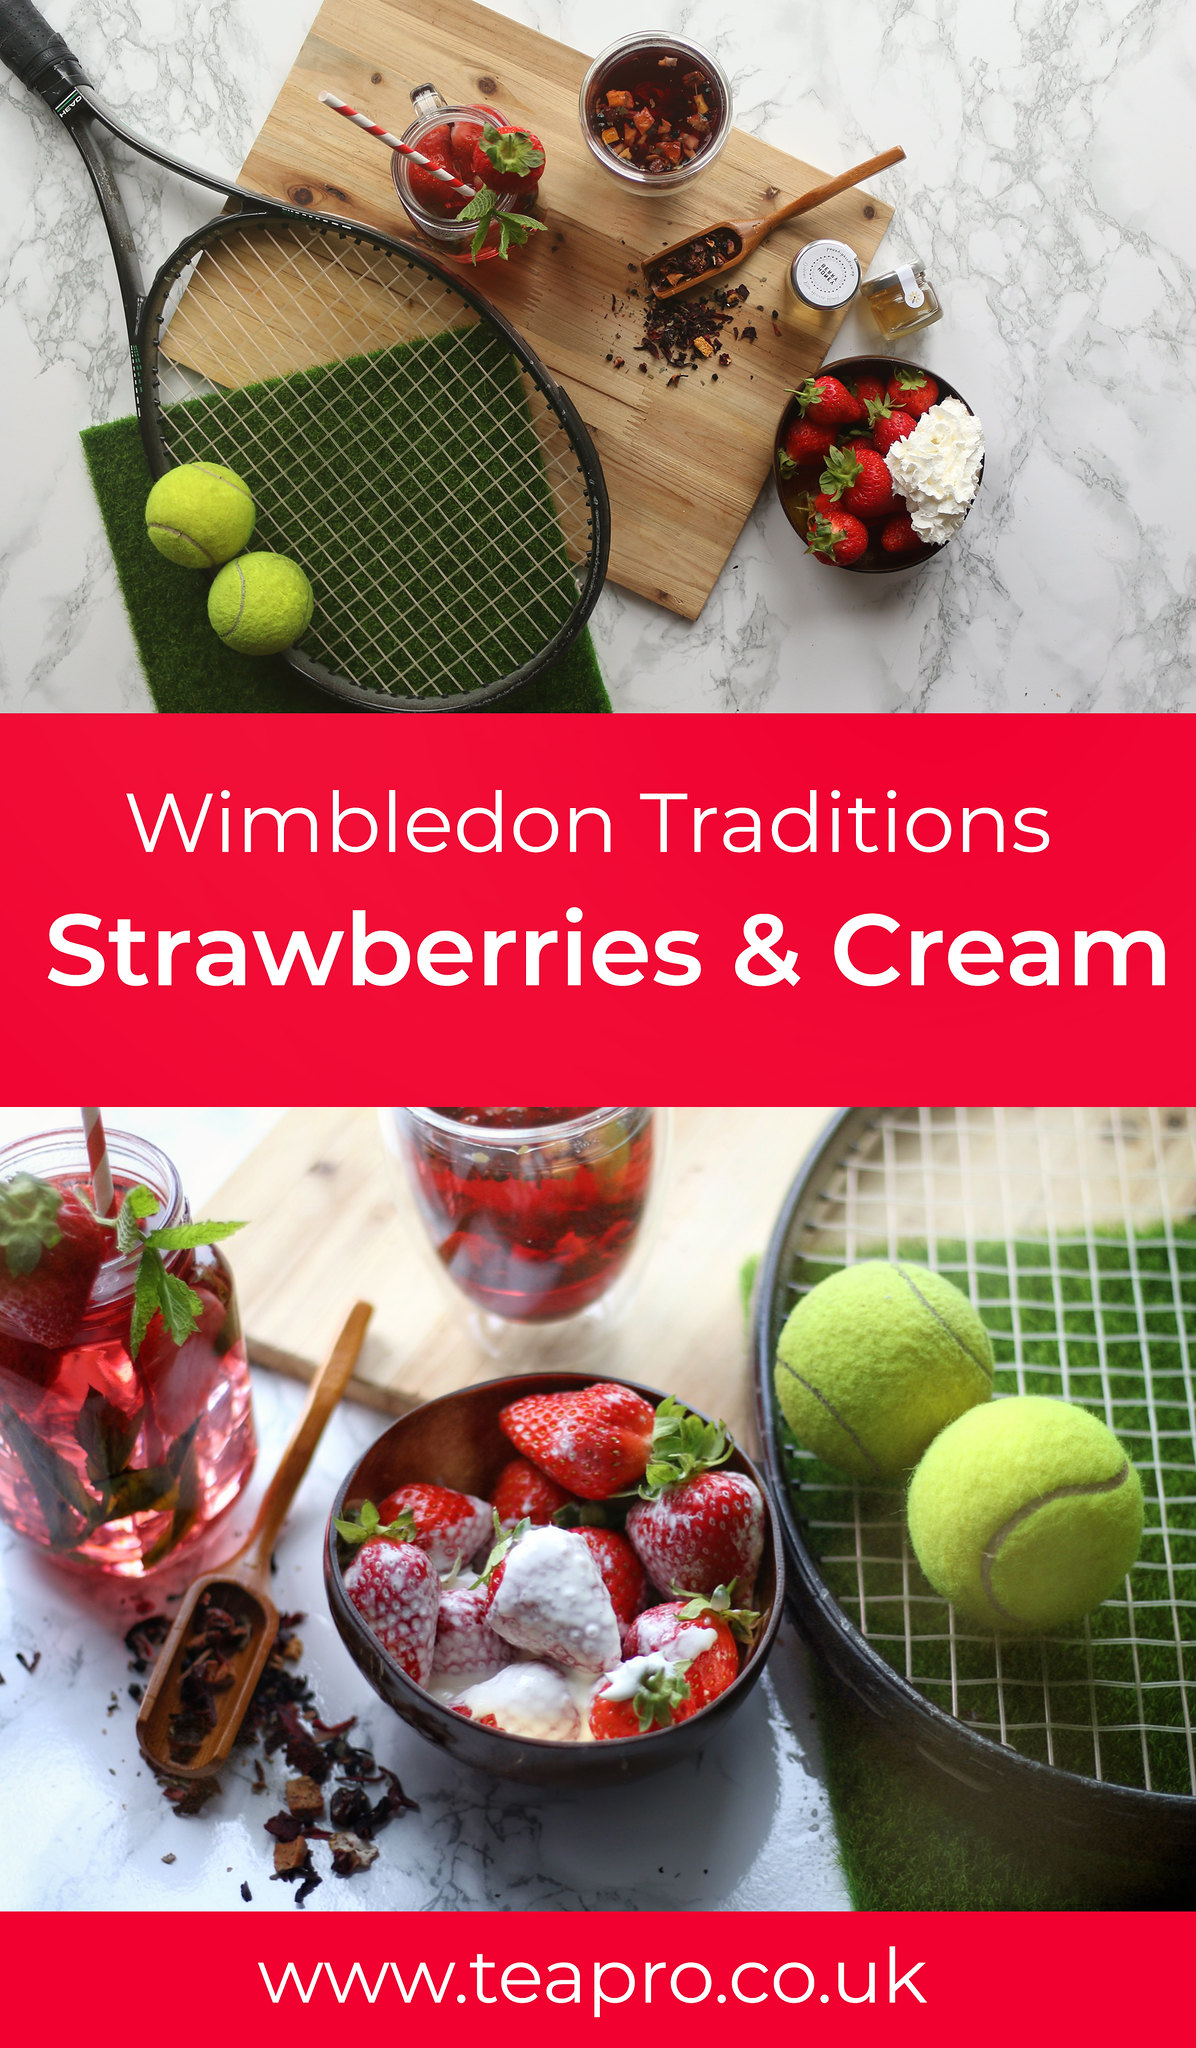 Wimbledon Tennis and Strawberries and Cream traditions